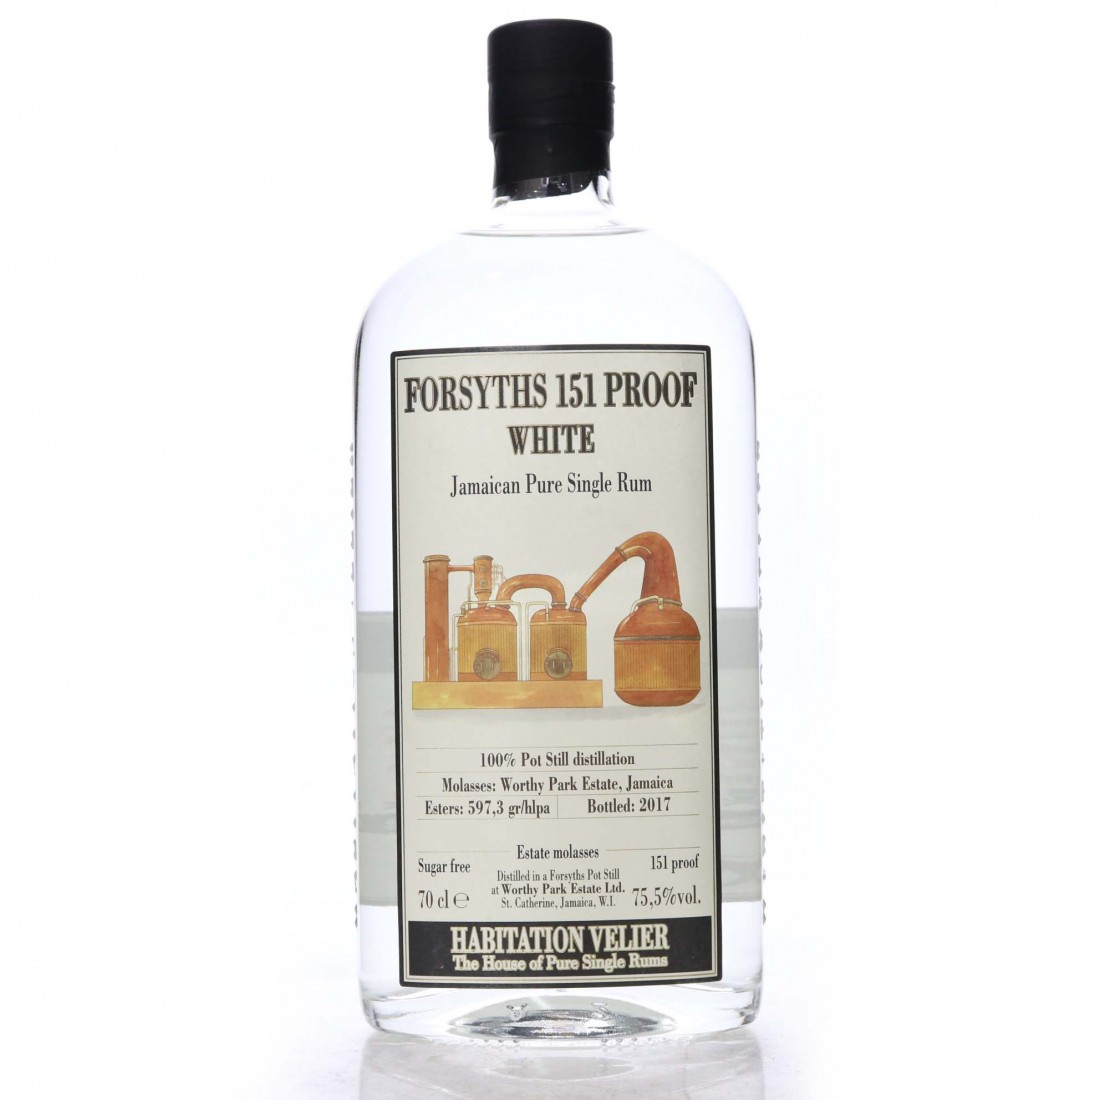 Forsyths 151 Proof White Habitation Velier